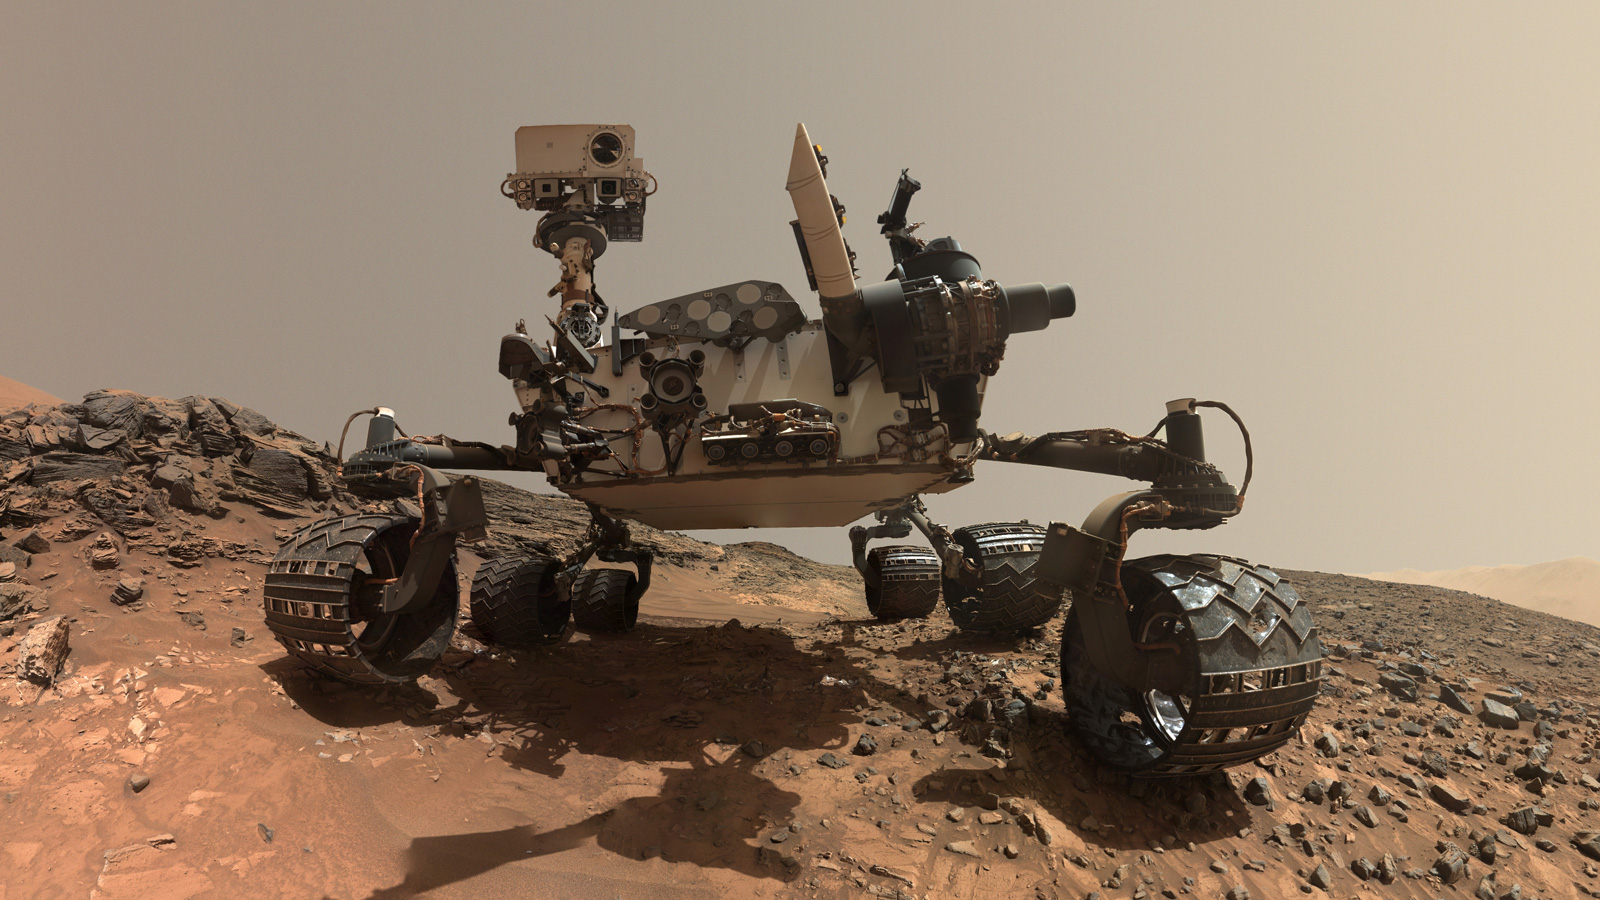 Curiosity Rover On Mars: What Is It Doing Right Now?